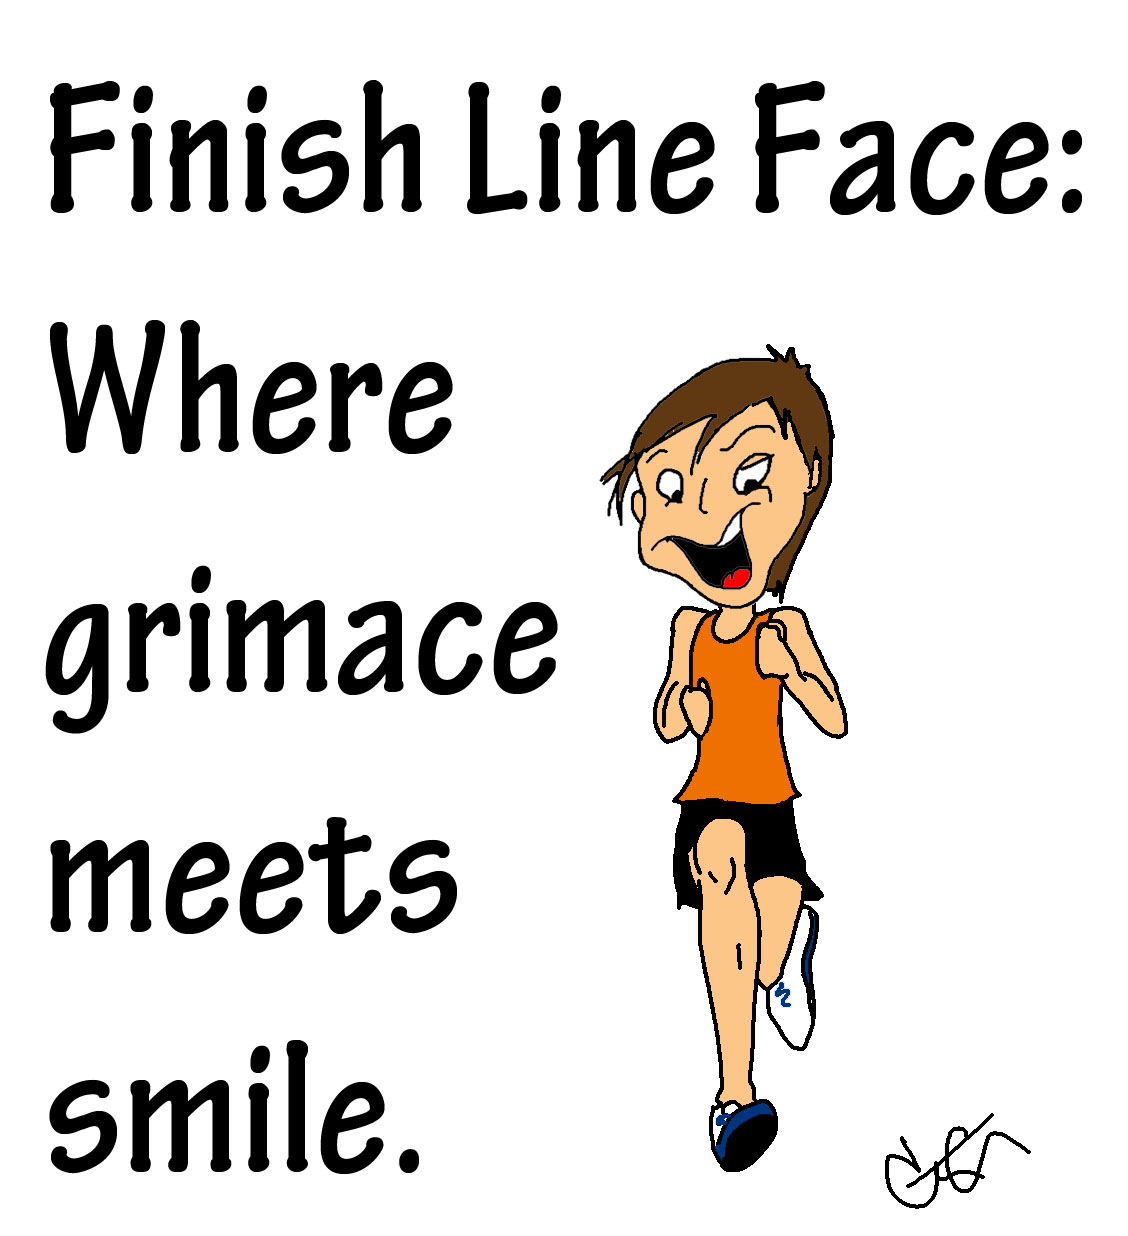 finish line face man running